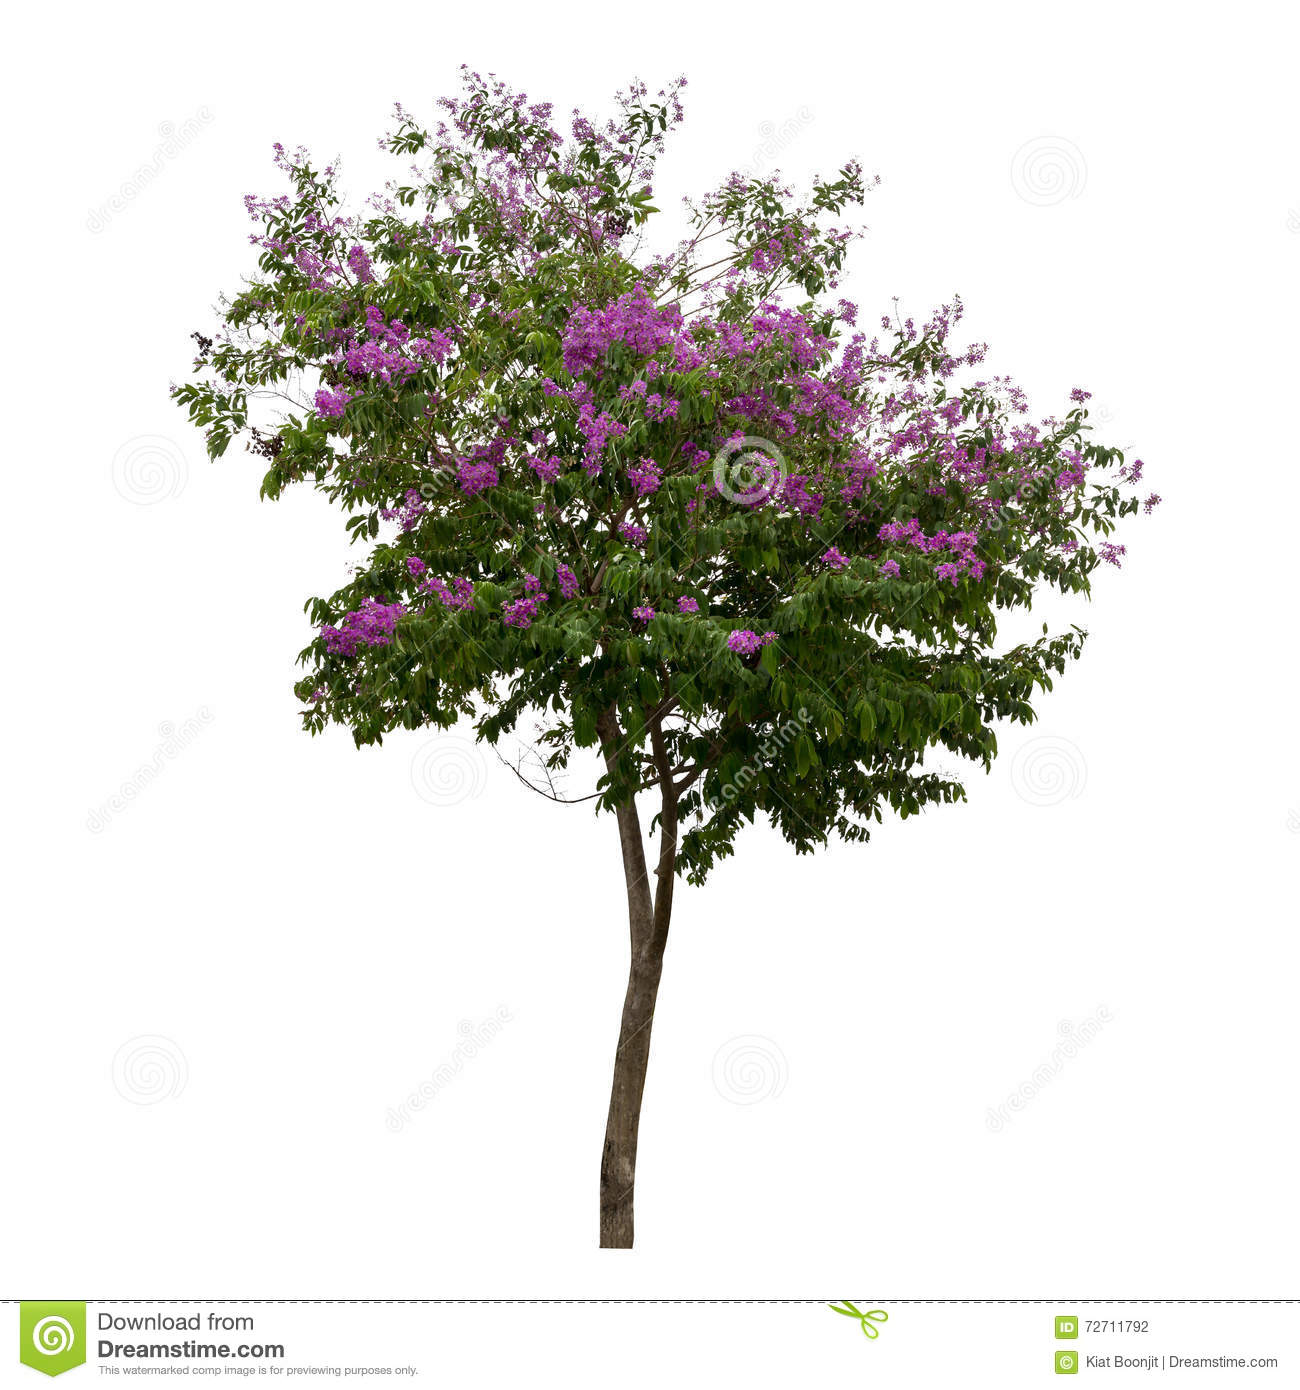 Collection of trees with purple flower isolated on white background collection of trees with purple flower isolated on white background mightylinksfo